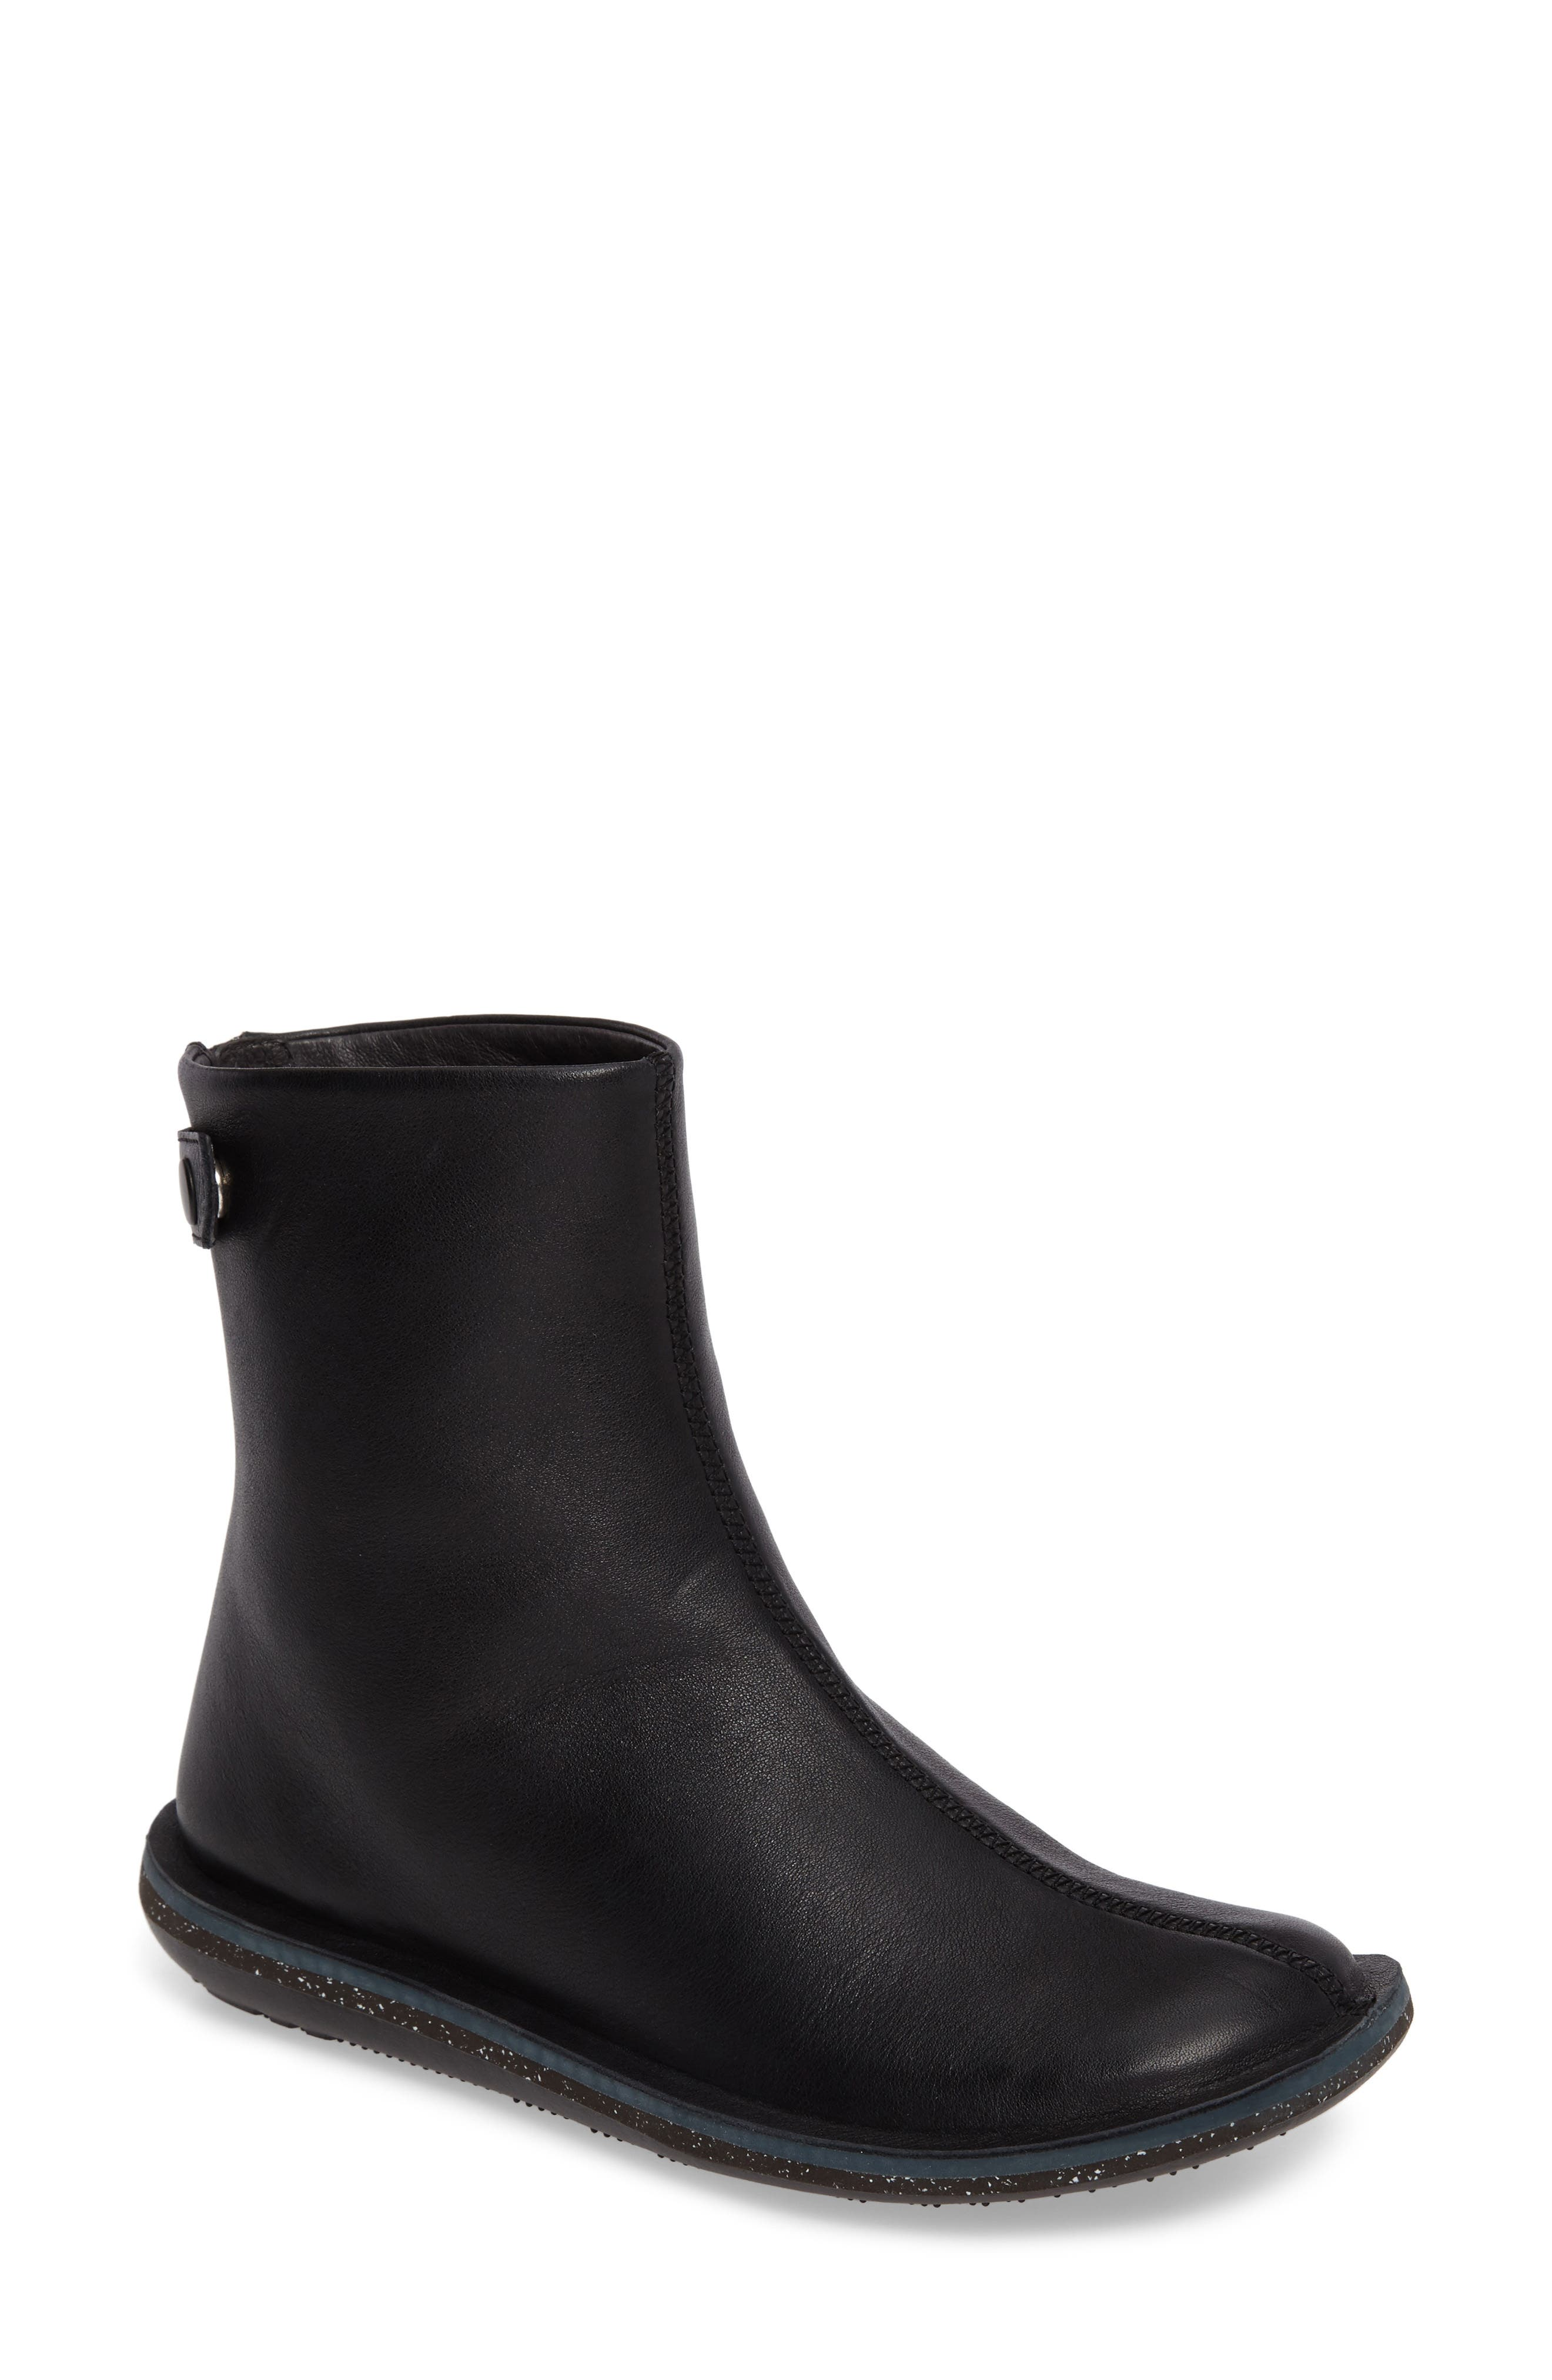 'Beetle Mid' Boot,                         Main,                         color, 005